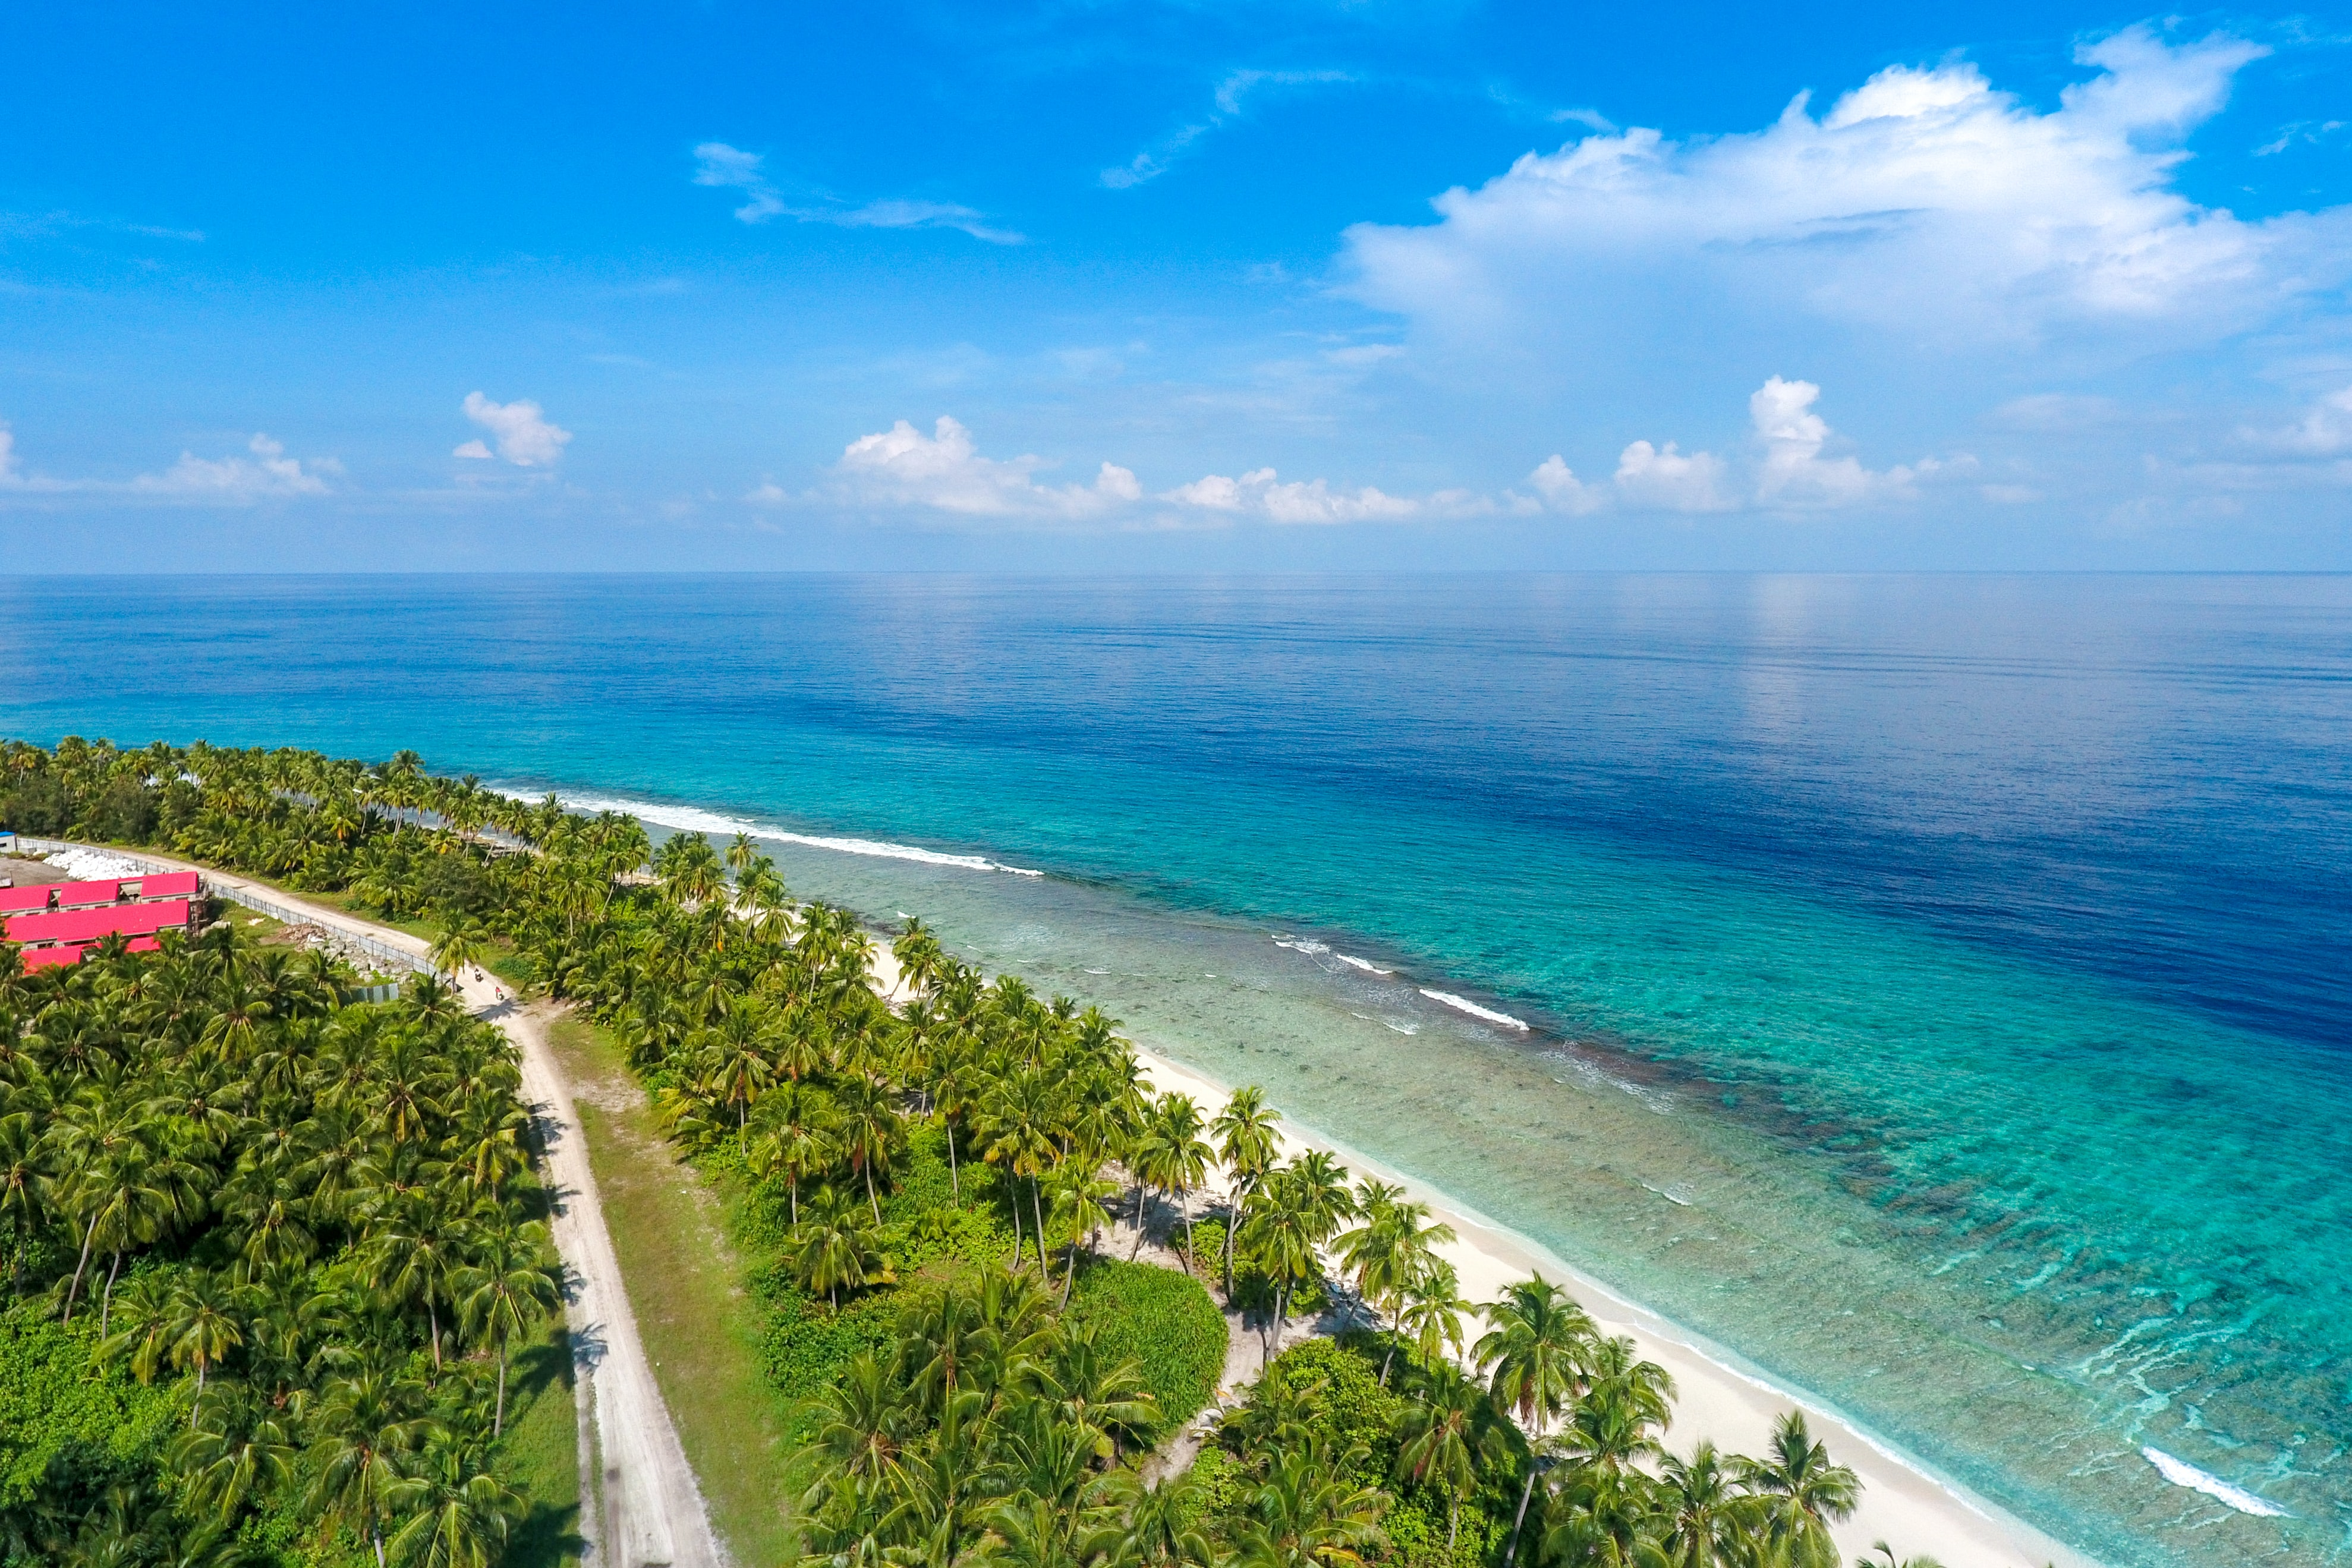 A high shot of an empty palm-fringed beach stretching along  the blue ocean on a sunny day